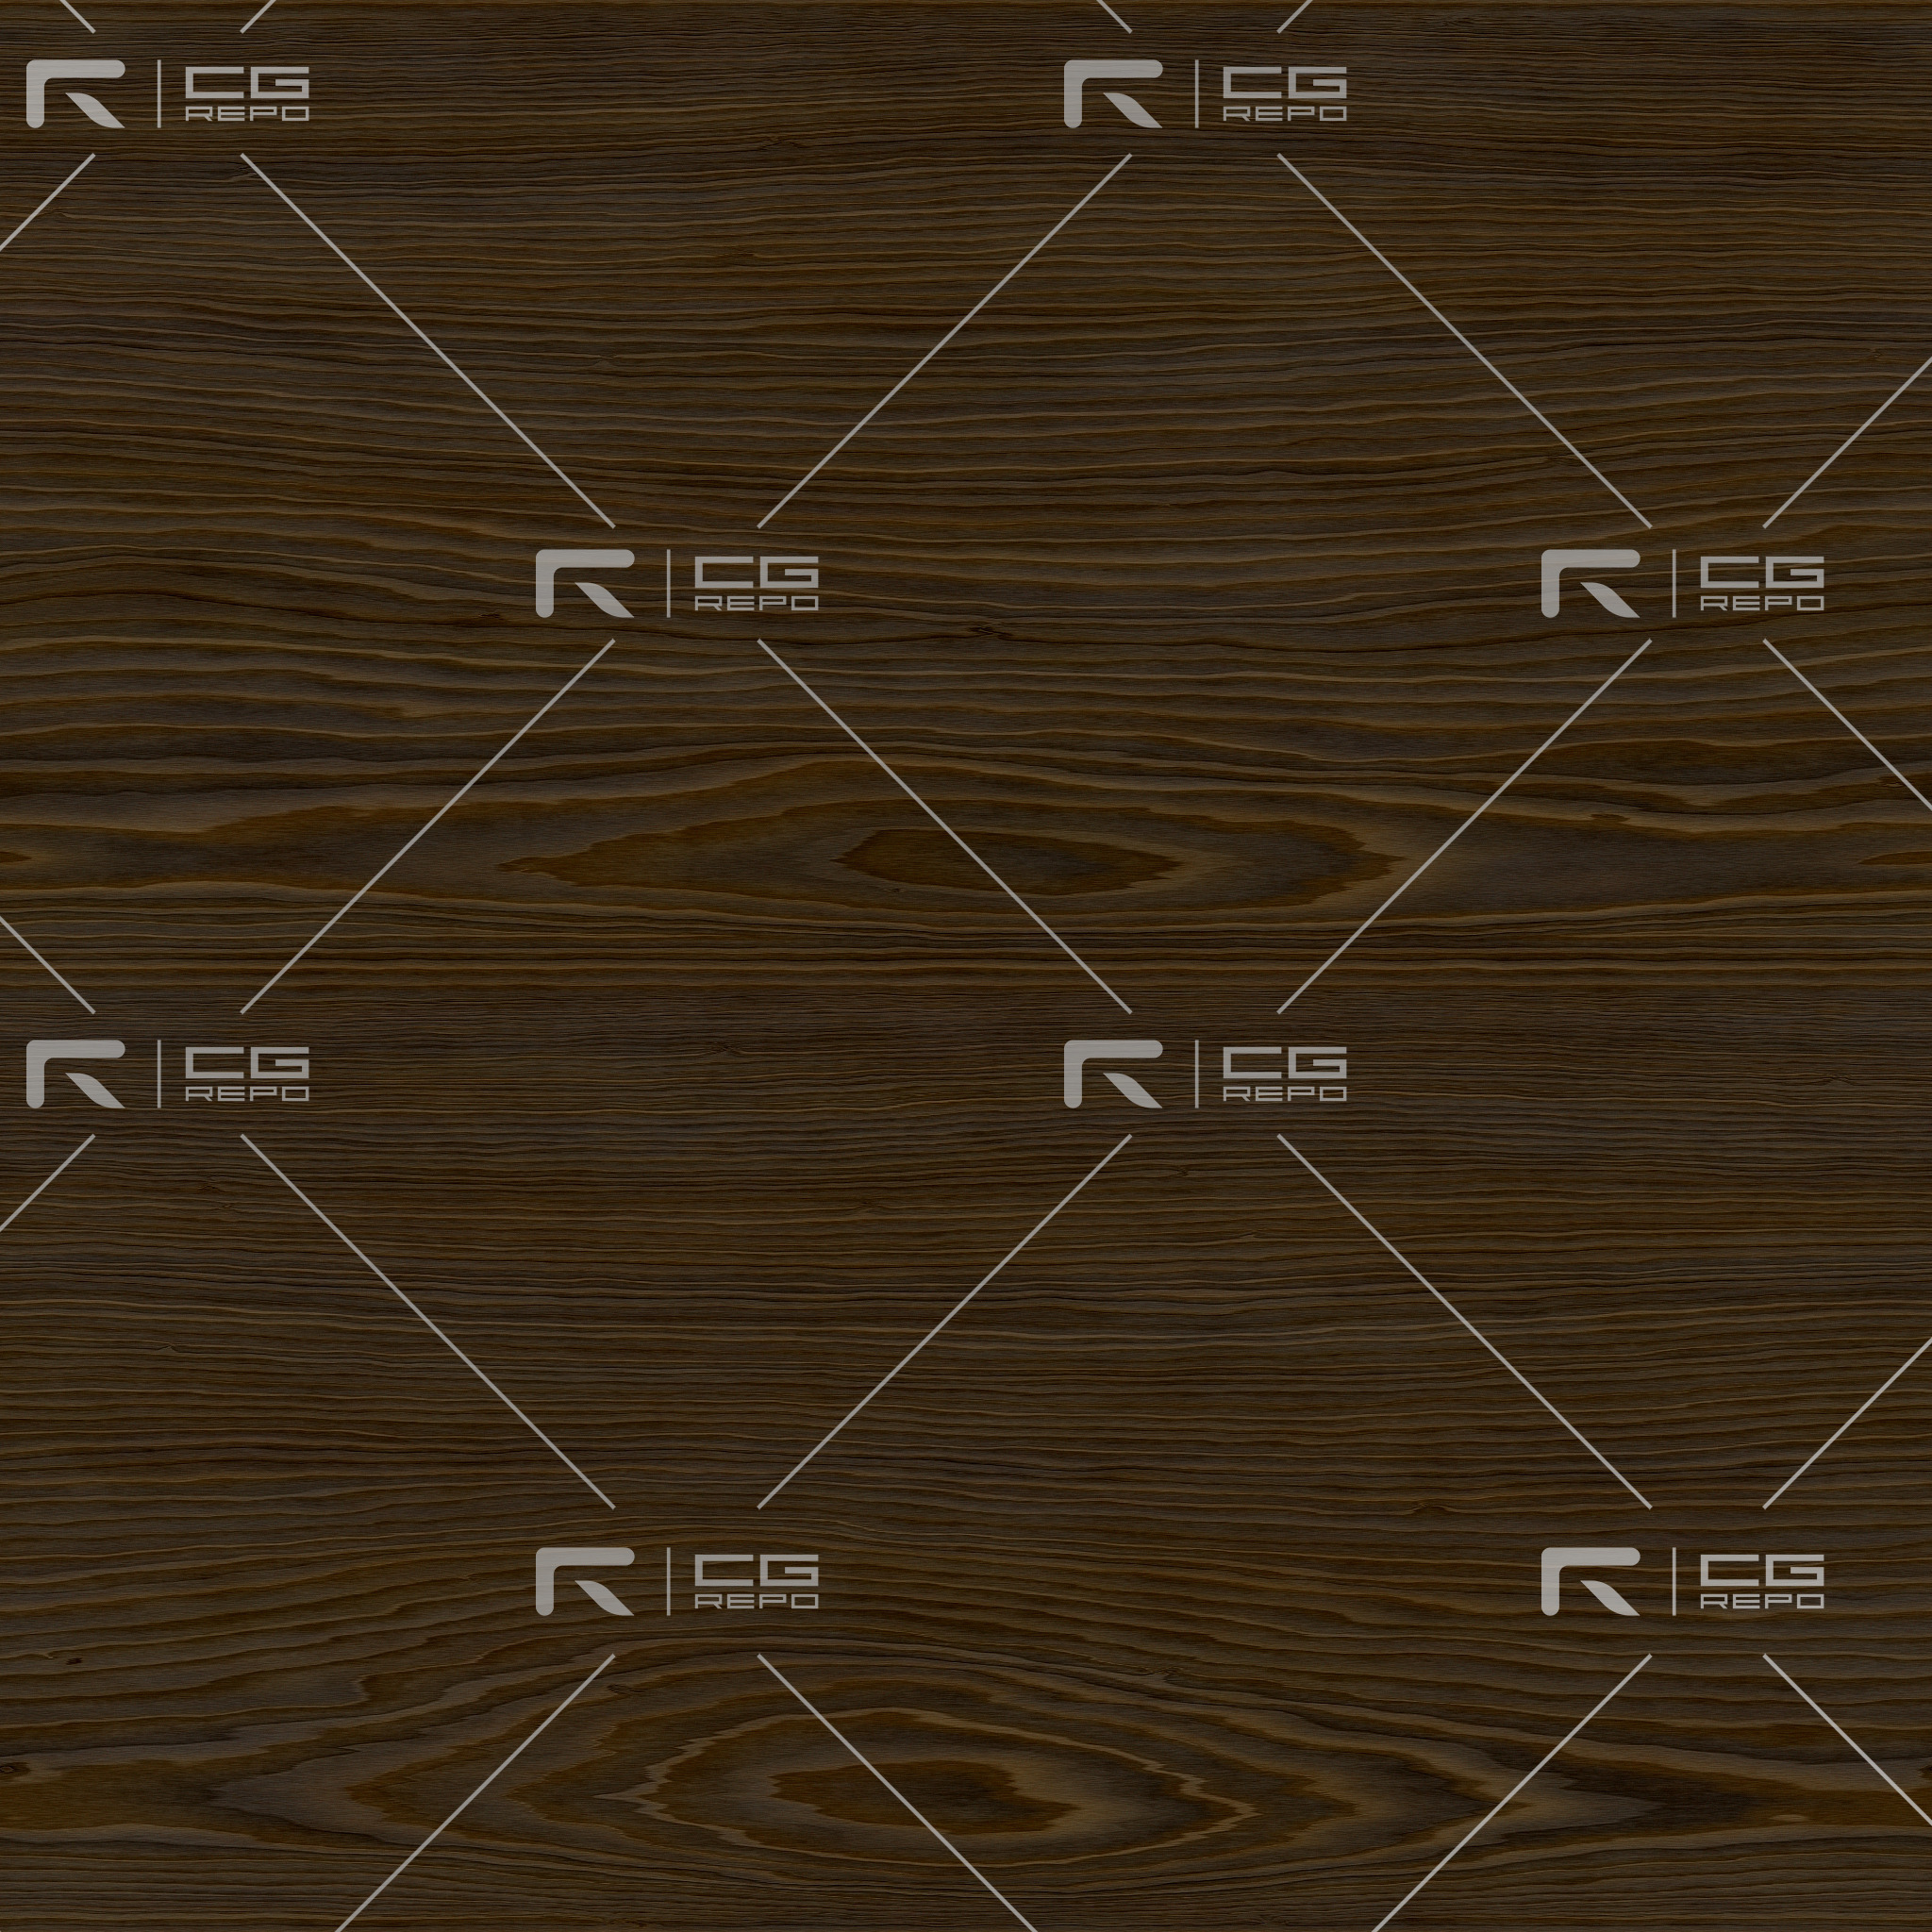 Walnut - Oxidated - Full Flat Sawn BaseColor Texture